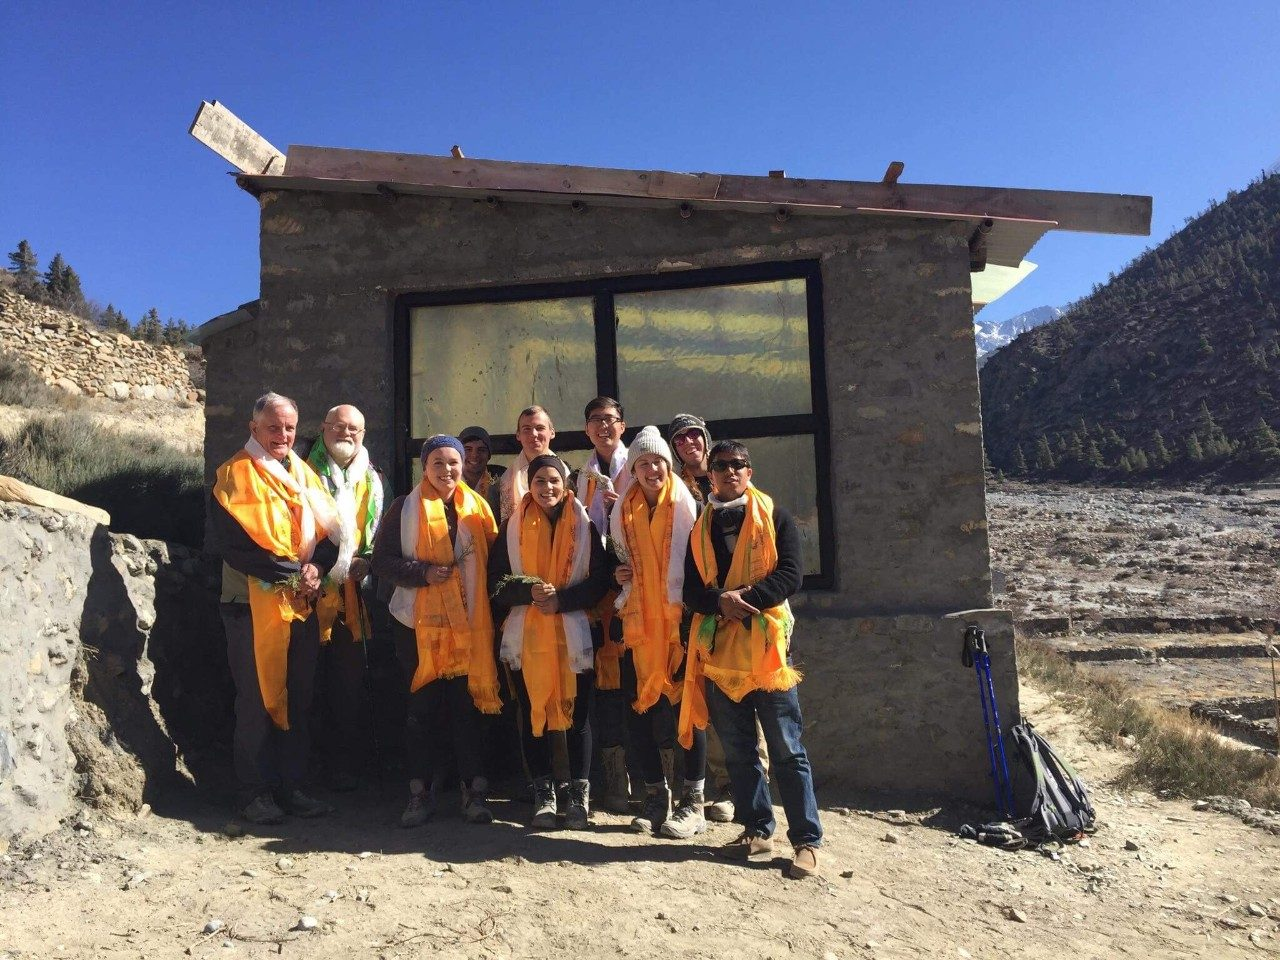 Virginia Tech's Service Without Borders team in front of a warming hut during the Winter 2017-18 trip to Nepal. Back row, from left: Tom Hammet, Professor of Sustainable Biomaterials; Brian Benham, Professor Biological Systems Engineering; Alfonso Marino; Mark Shepheard; Julian Park; Evan Charnoff. Front Row, from left: Sylvia Connor;  Sara Herndandez; Lauren Holt; and Tsewang Gyurme, in country contact/local guide. Photo submitted by Mark Shepheard.